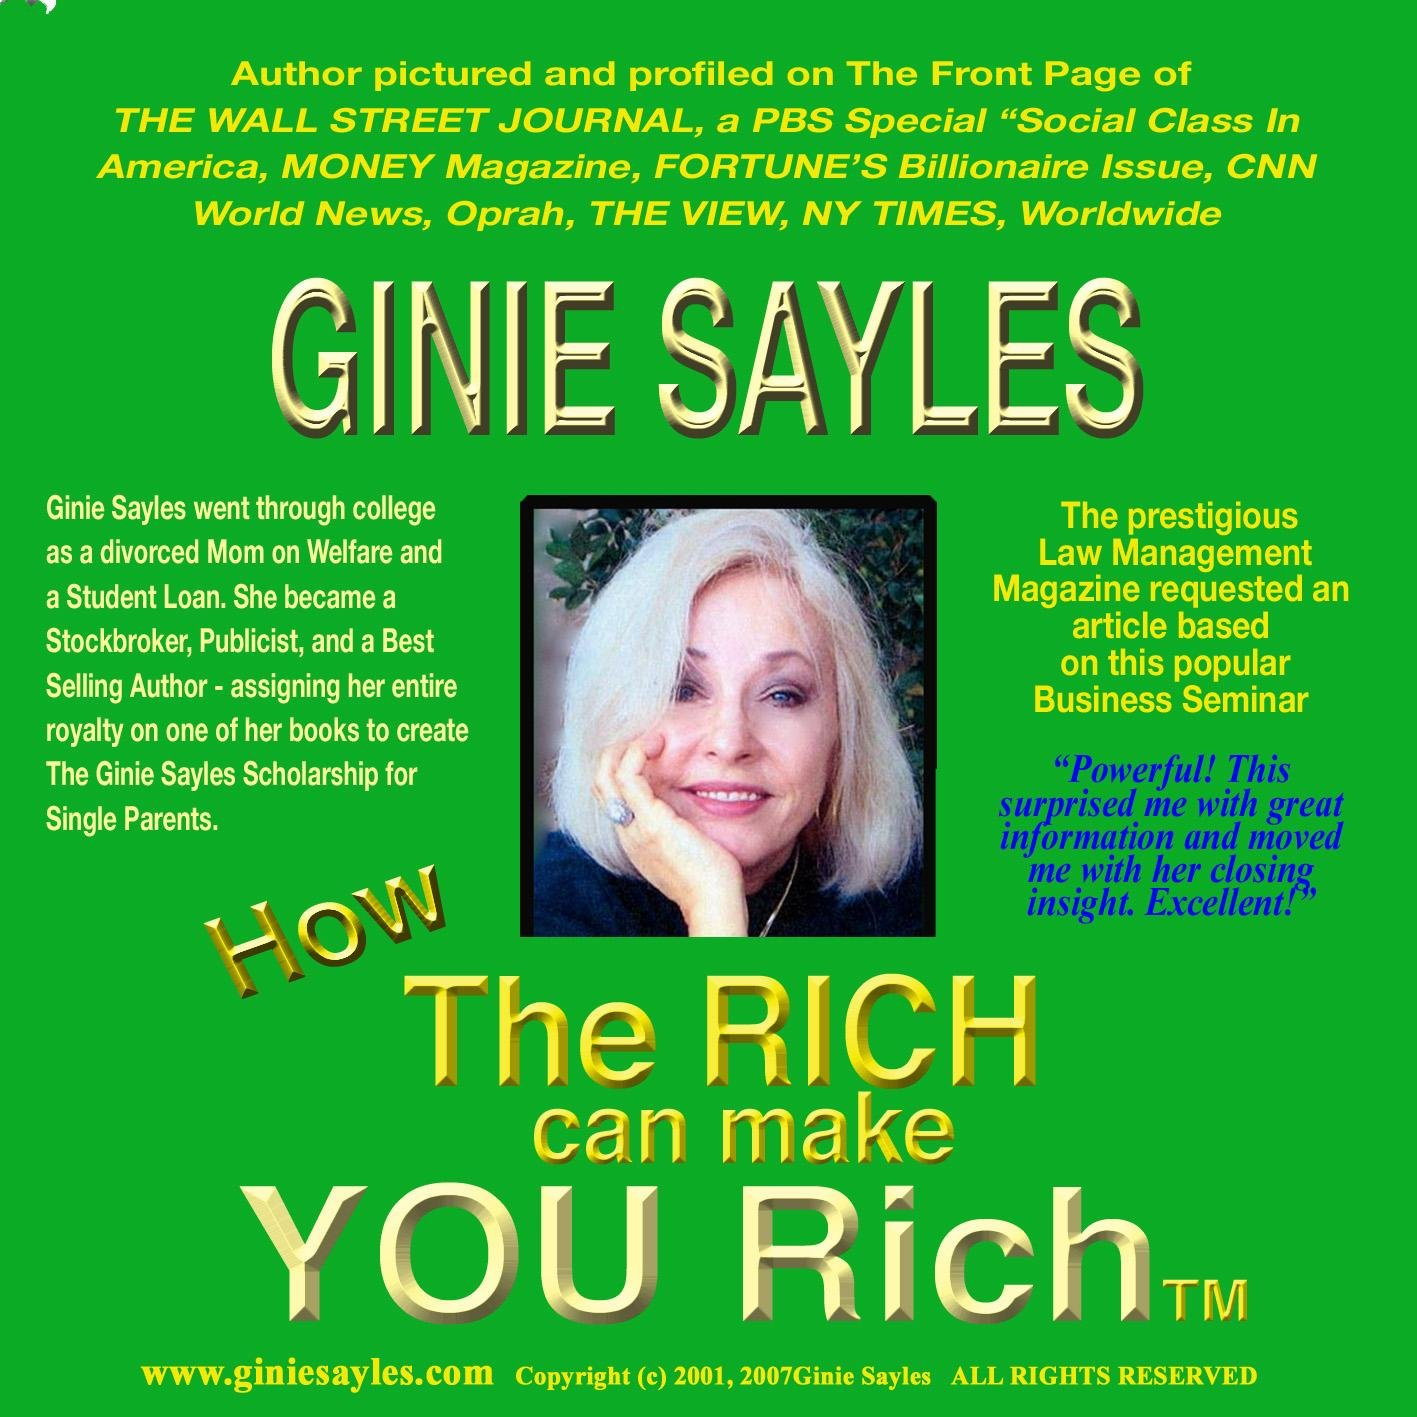 Amazon.com: HOW THE RICH CAN MAKE YOU RICH by GINIE SAYLES